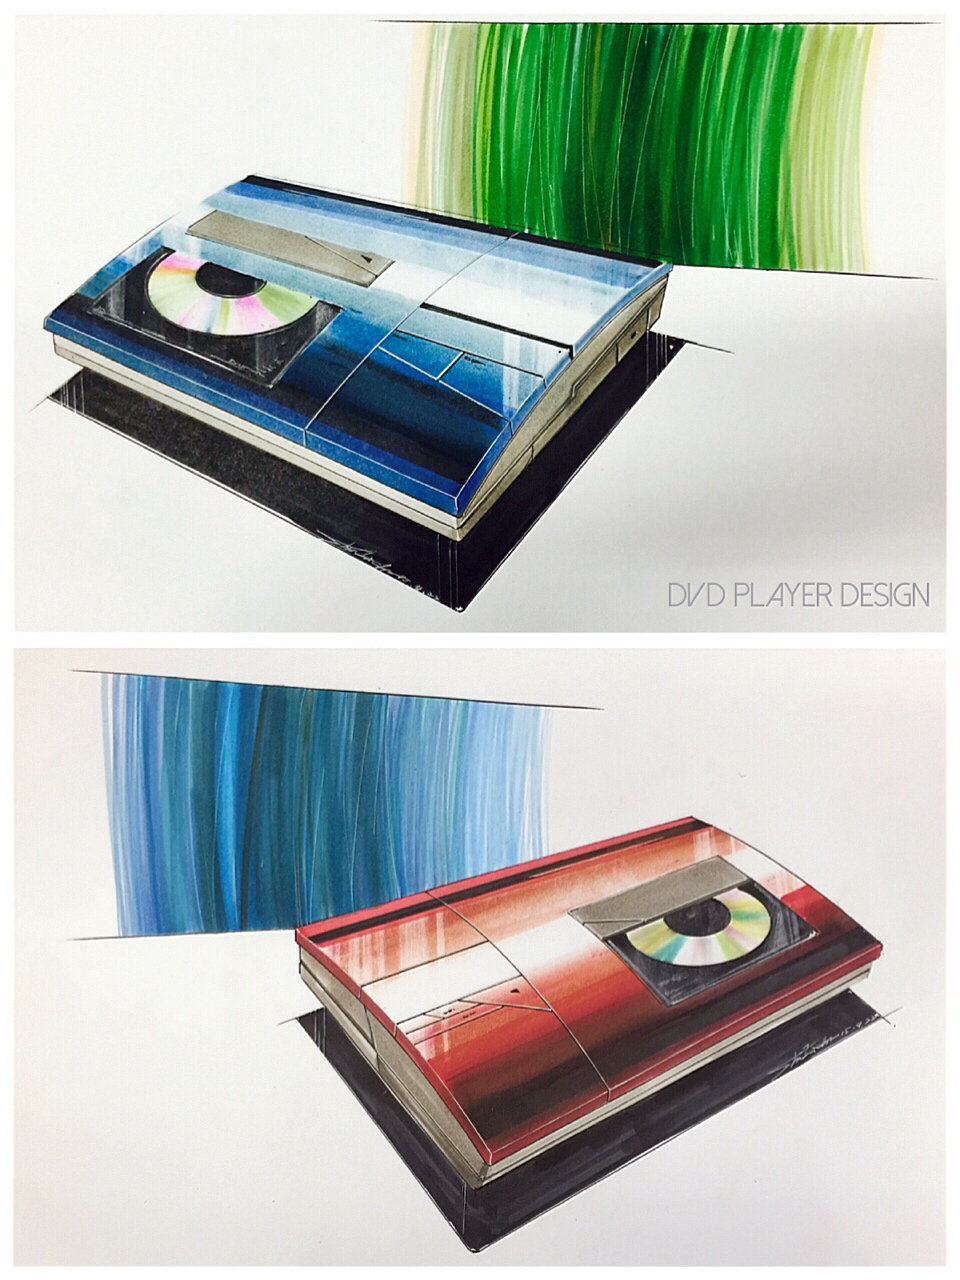 960x1280 Dvd Player Design Marker Drawing Pastel Uni 0.1mm0.5mm Product